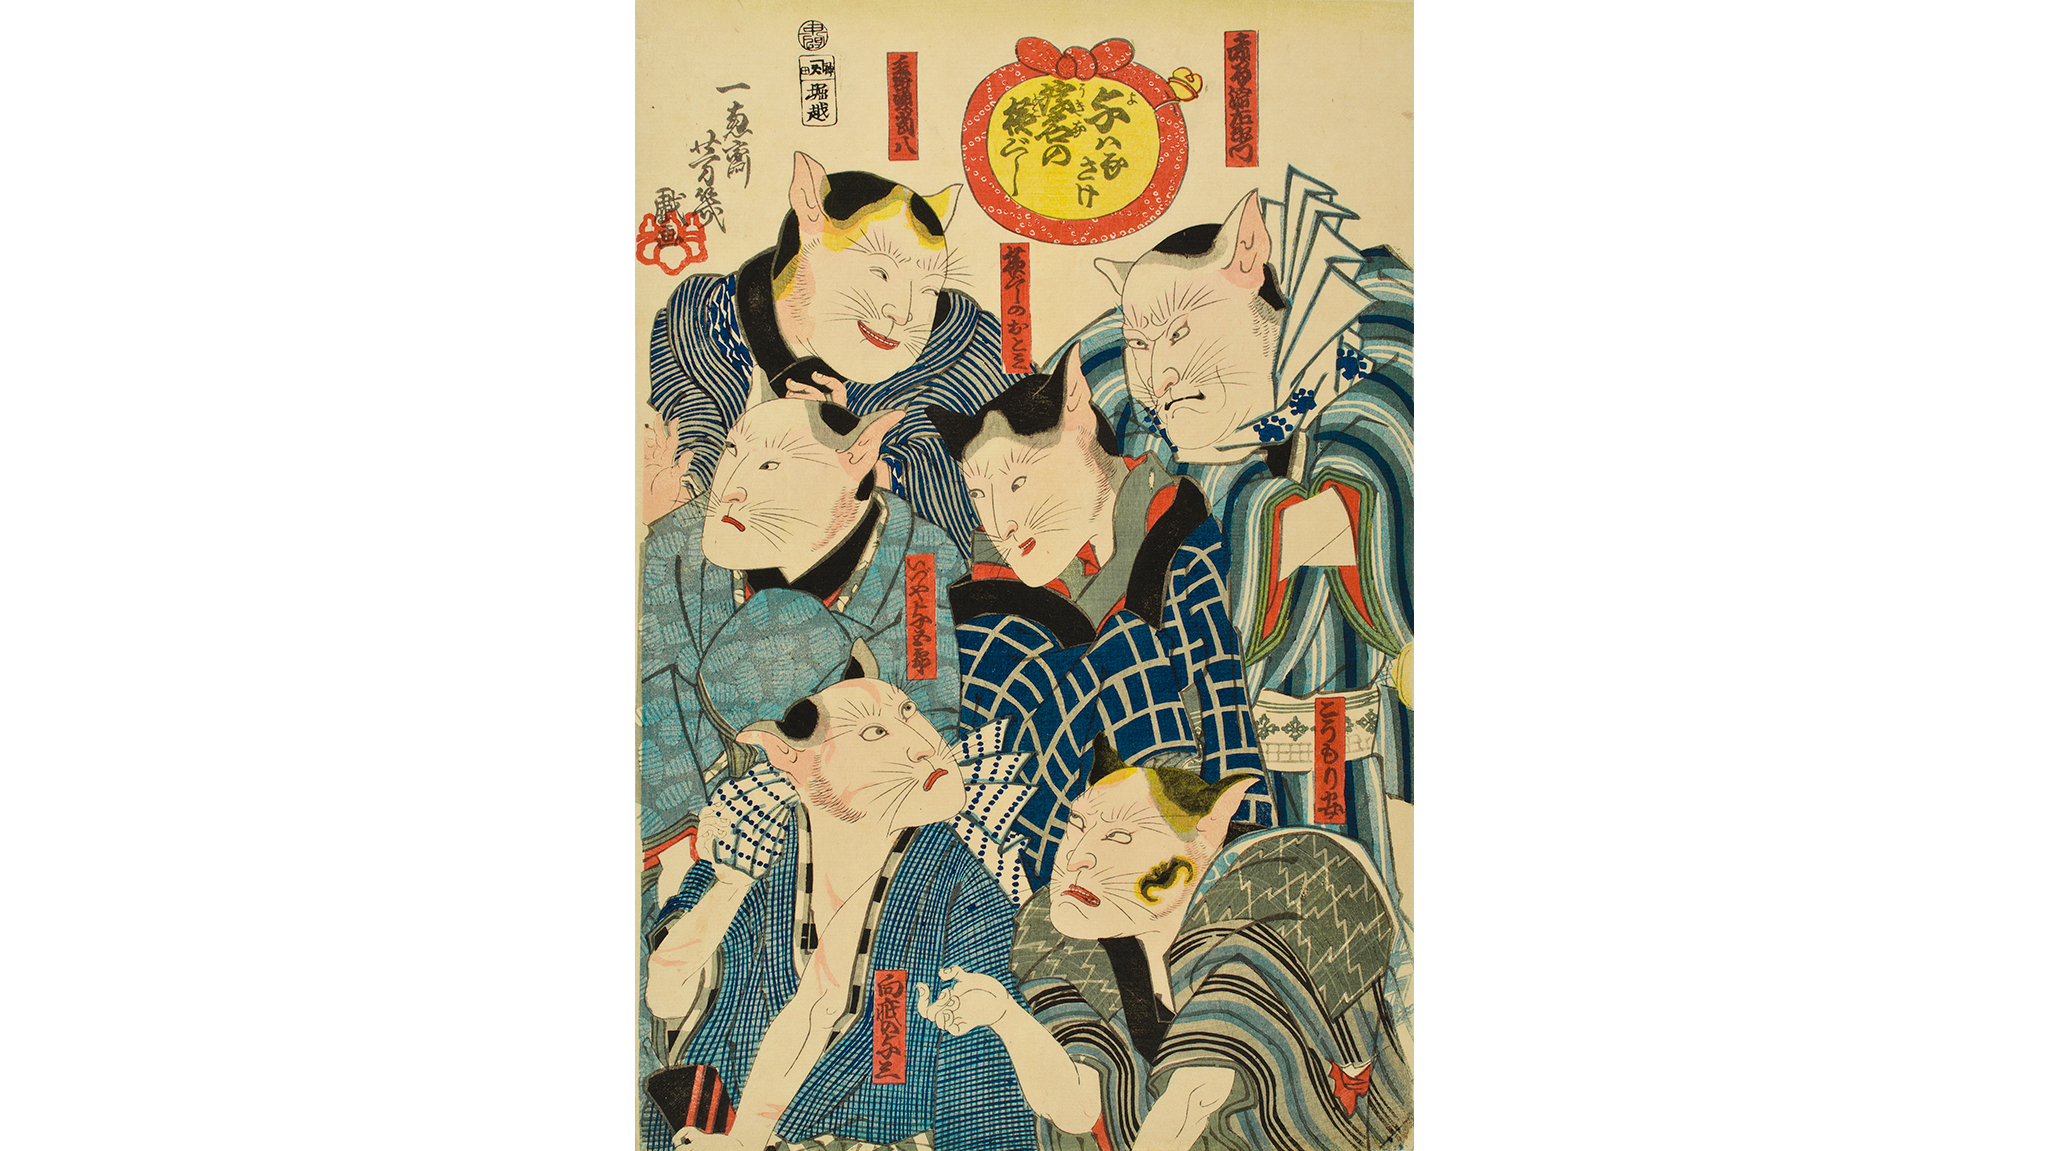 Utagawa Yoshiiku (1833–1904), The Story of Otomi and Yosaburō, 1860. Color woodblock print; 22 ½ x 16 inches.